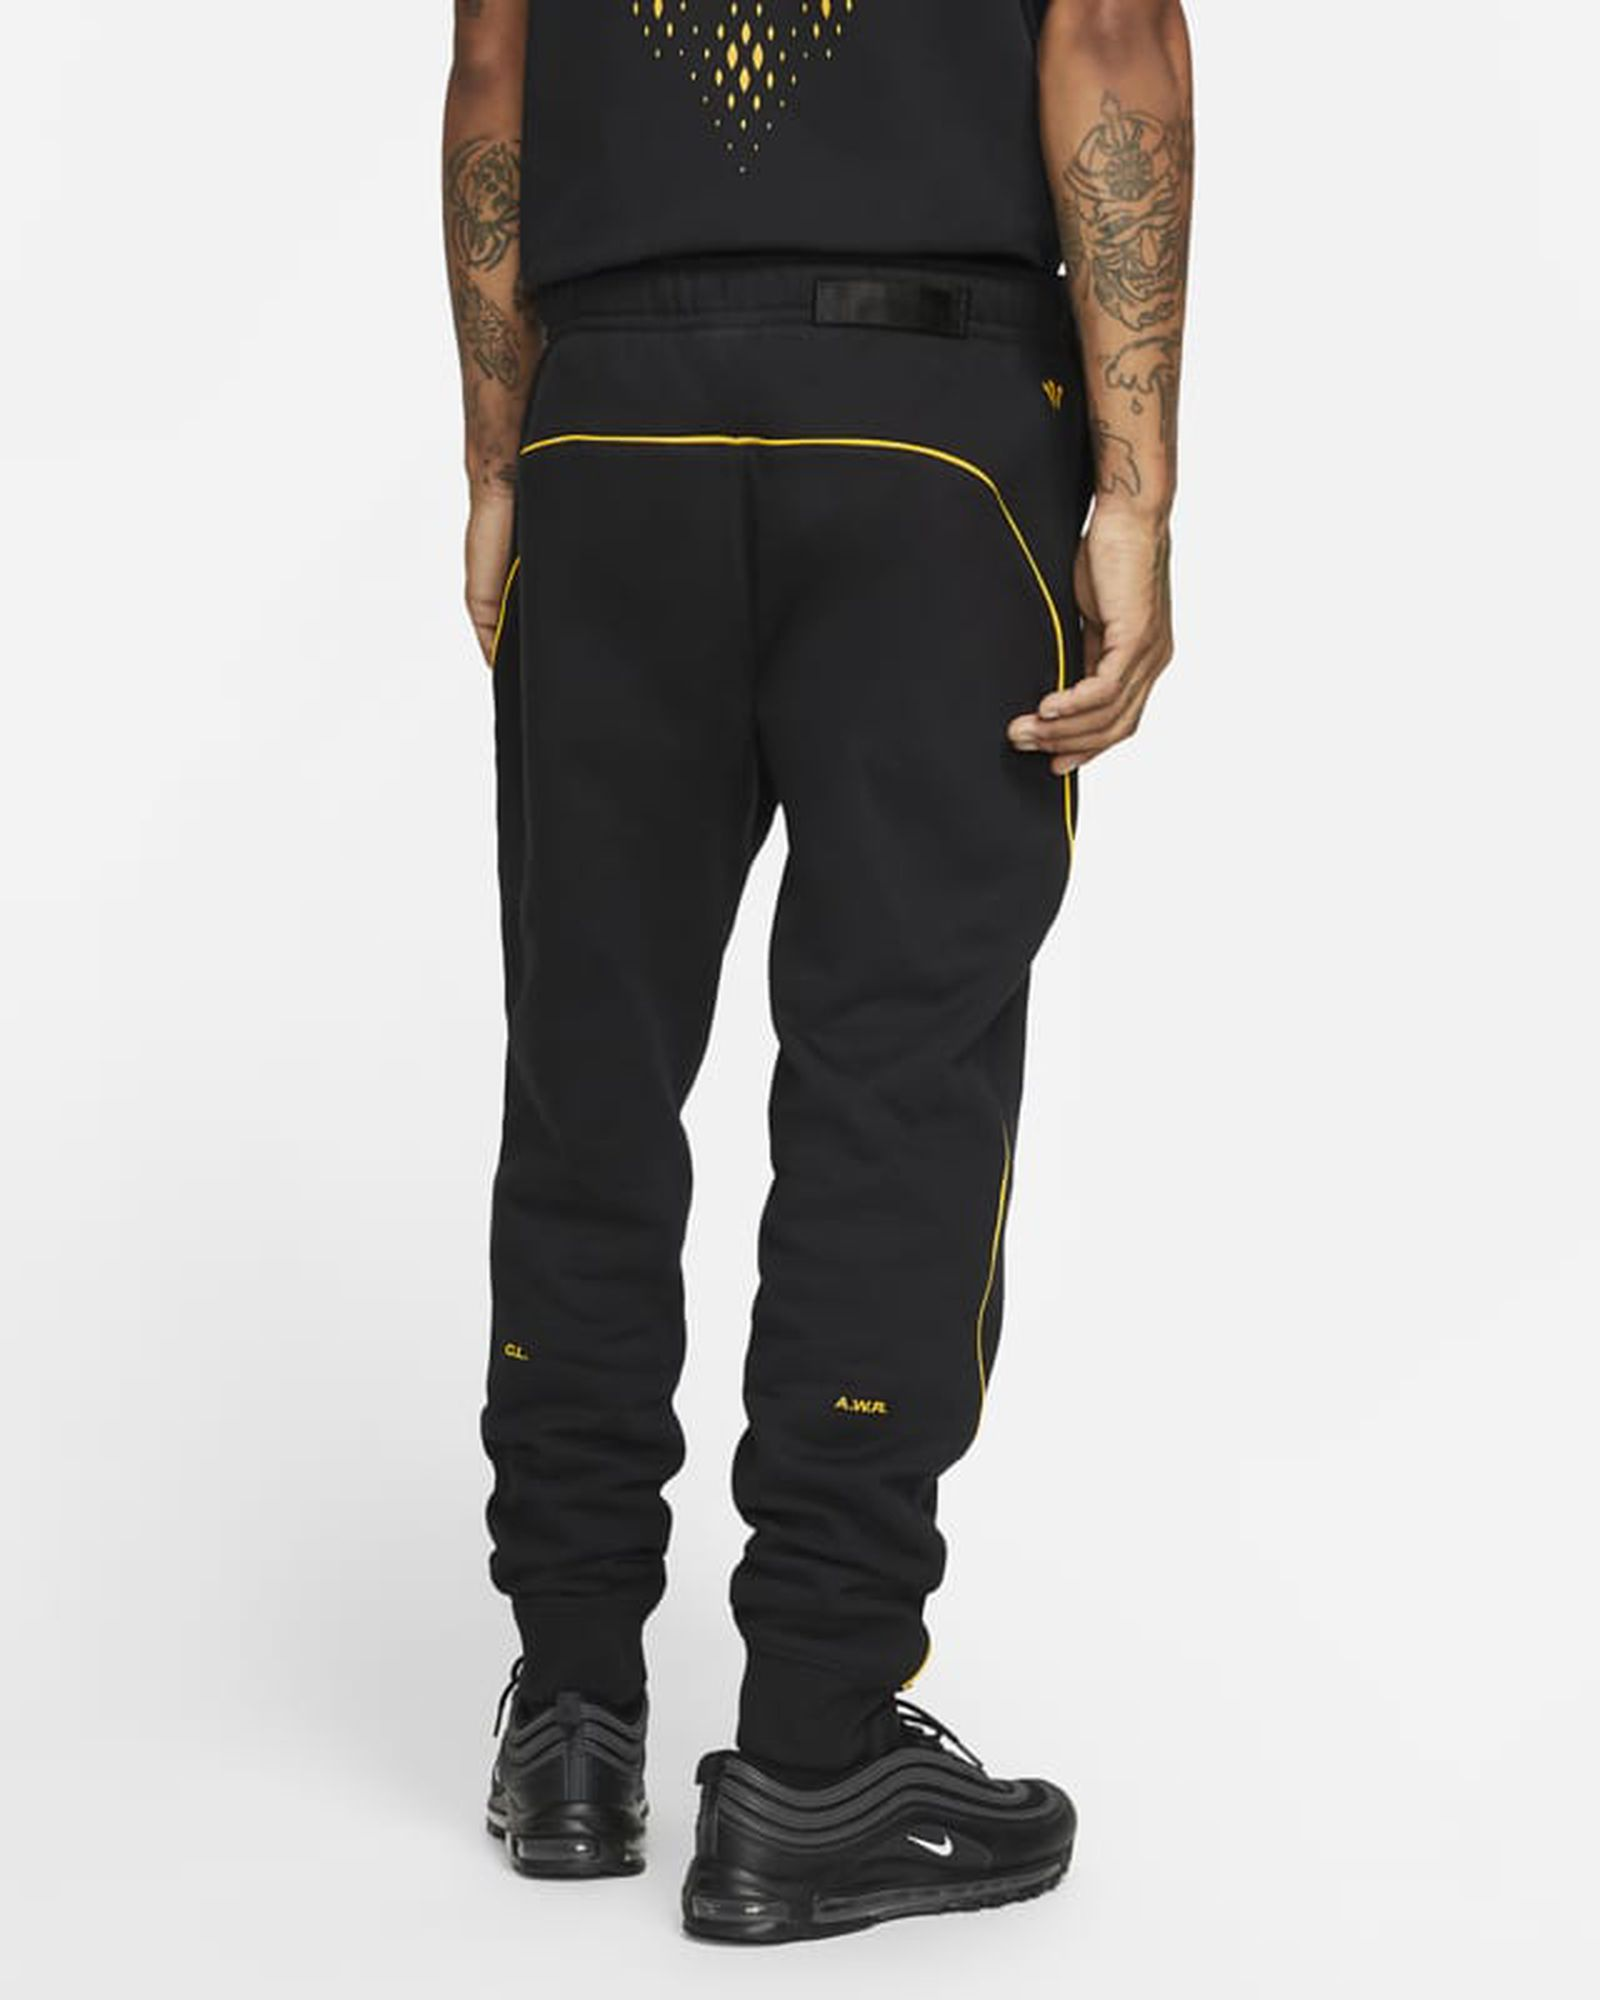 drake-nike-nocta-collection-release-date-price-10